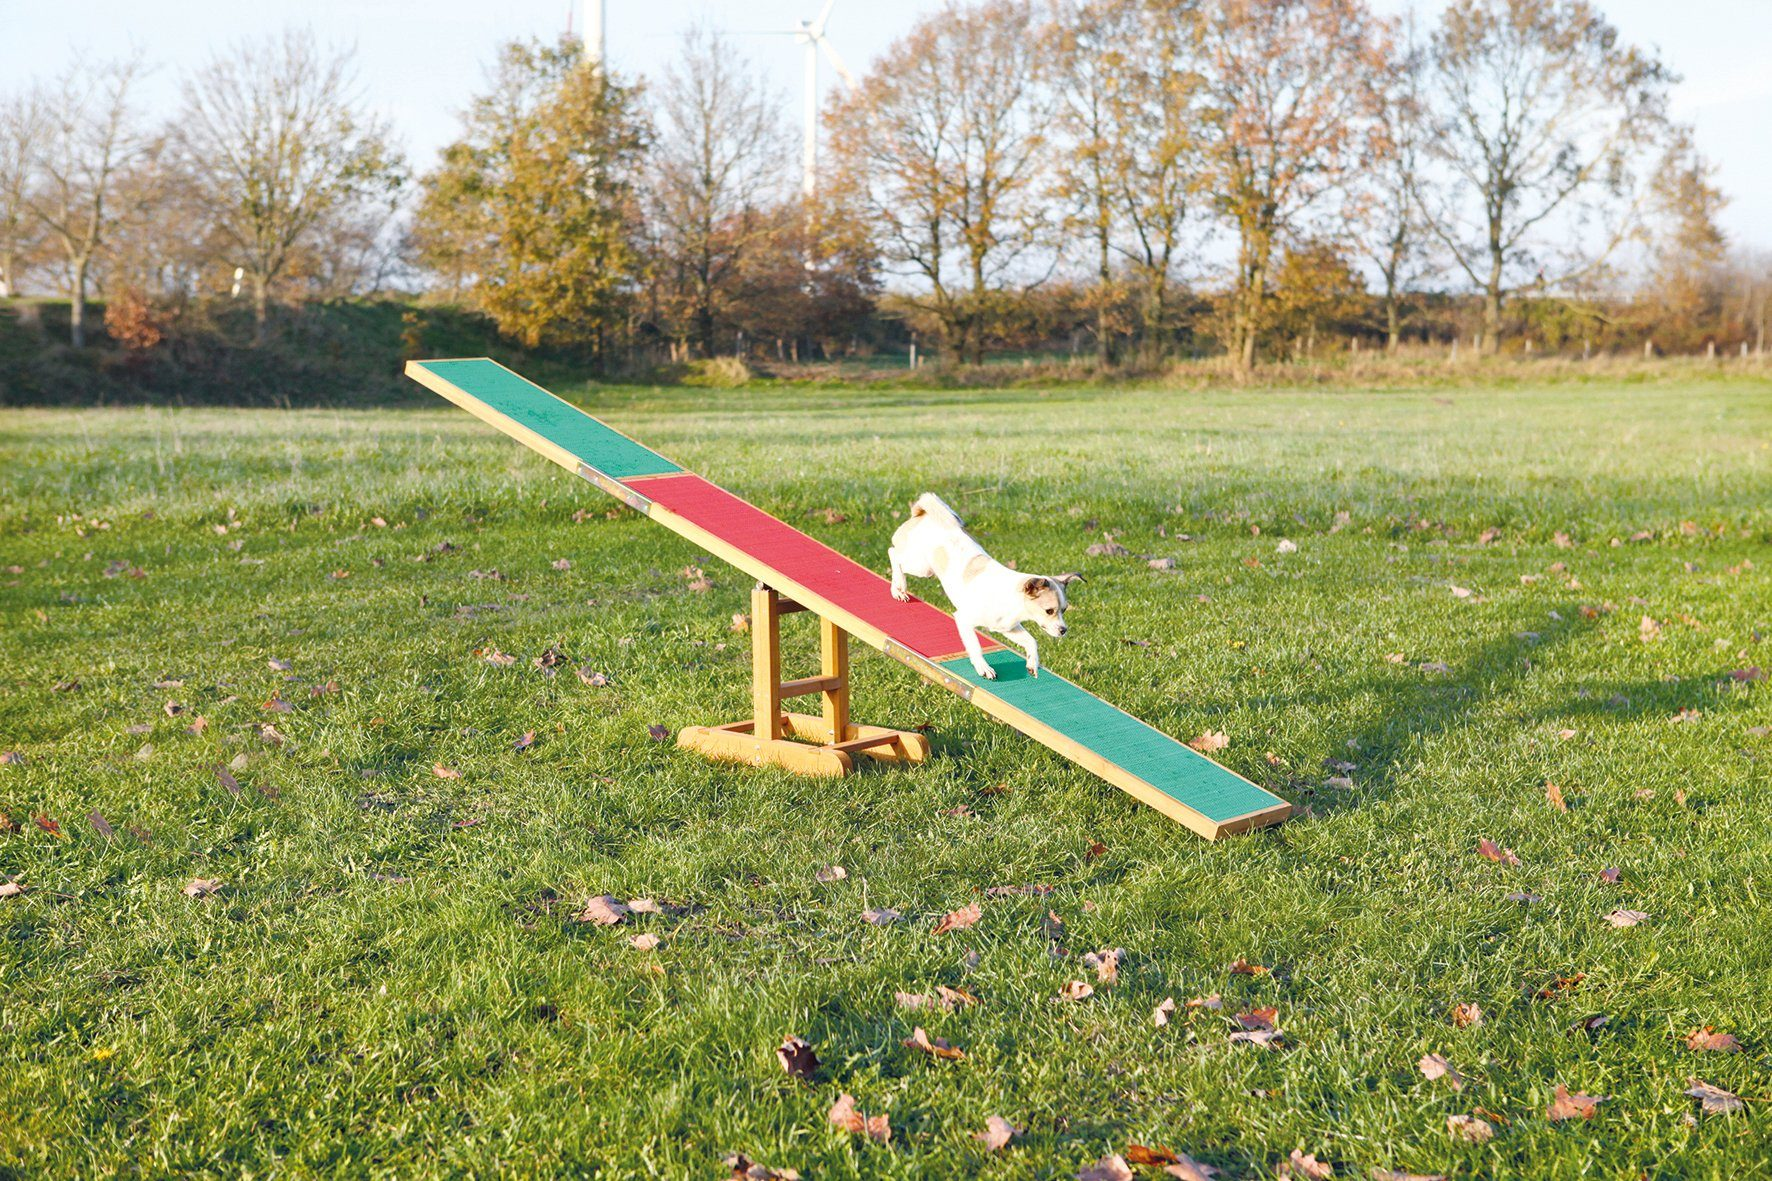 Hunde Agility Wippe, L/B/H: 300/34/54 cm